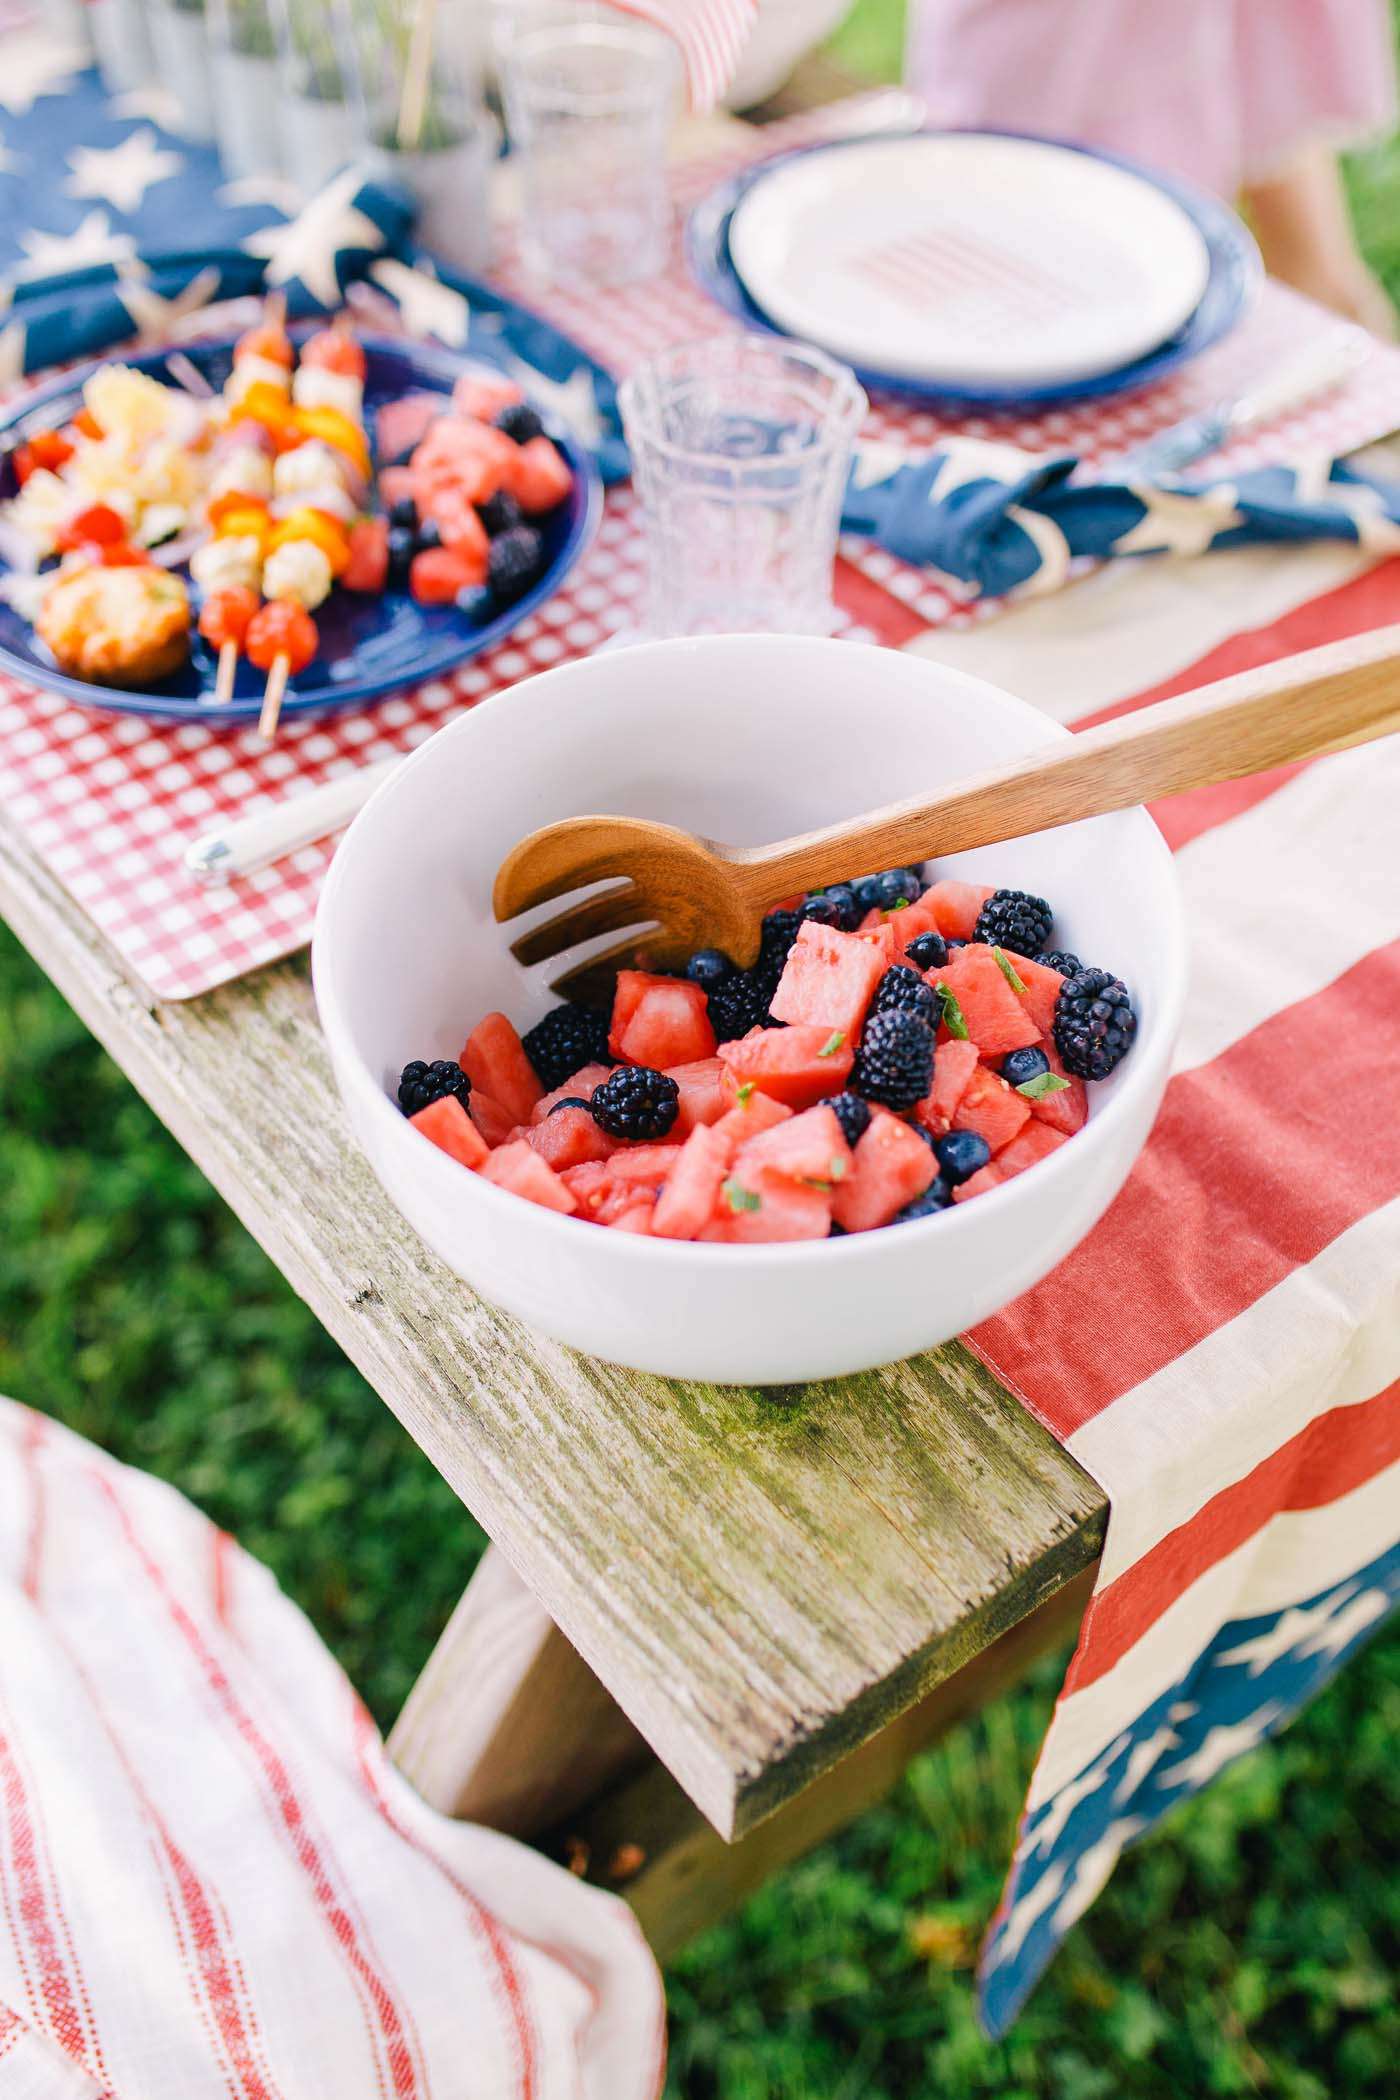 A roundup of Fourth of July menu ideas by Lauren Cermak of the Southern Lifestyle Blog, Going For Grace. The perfect addition to any red, white, and blue celebration!